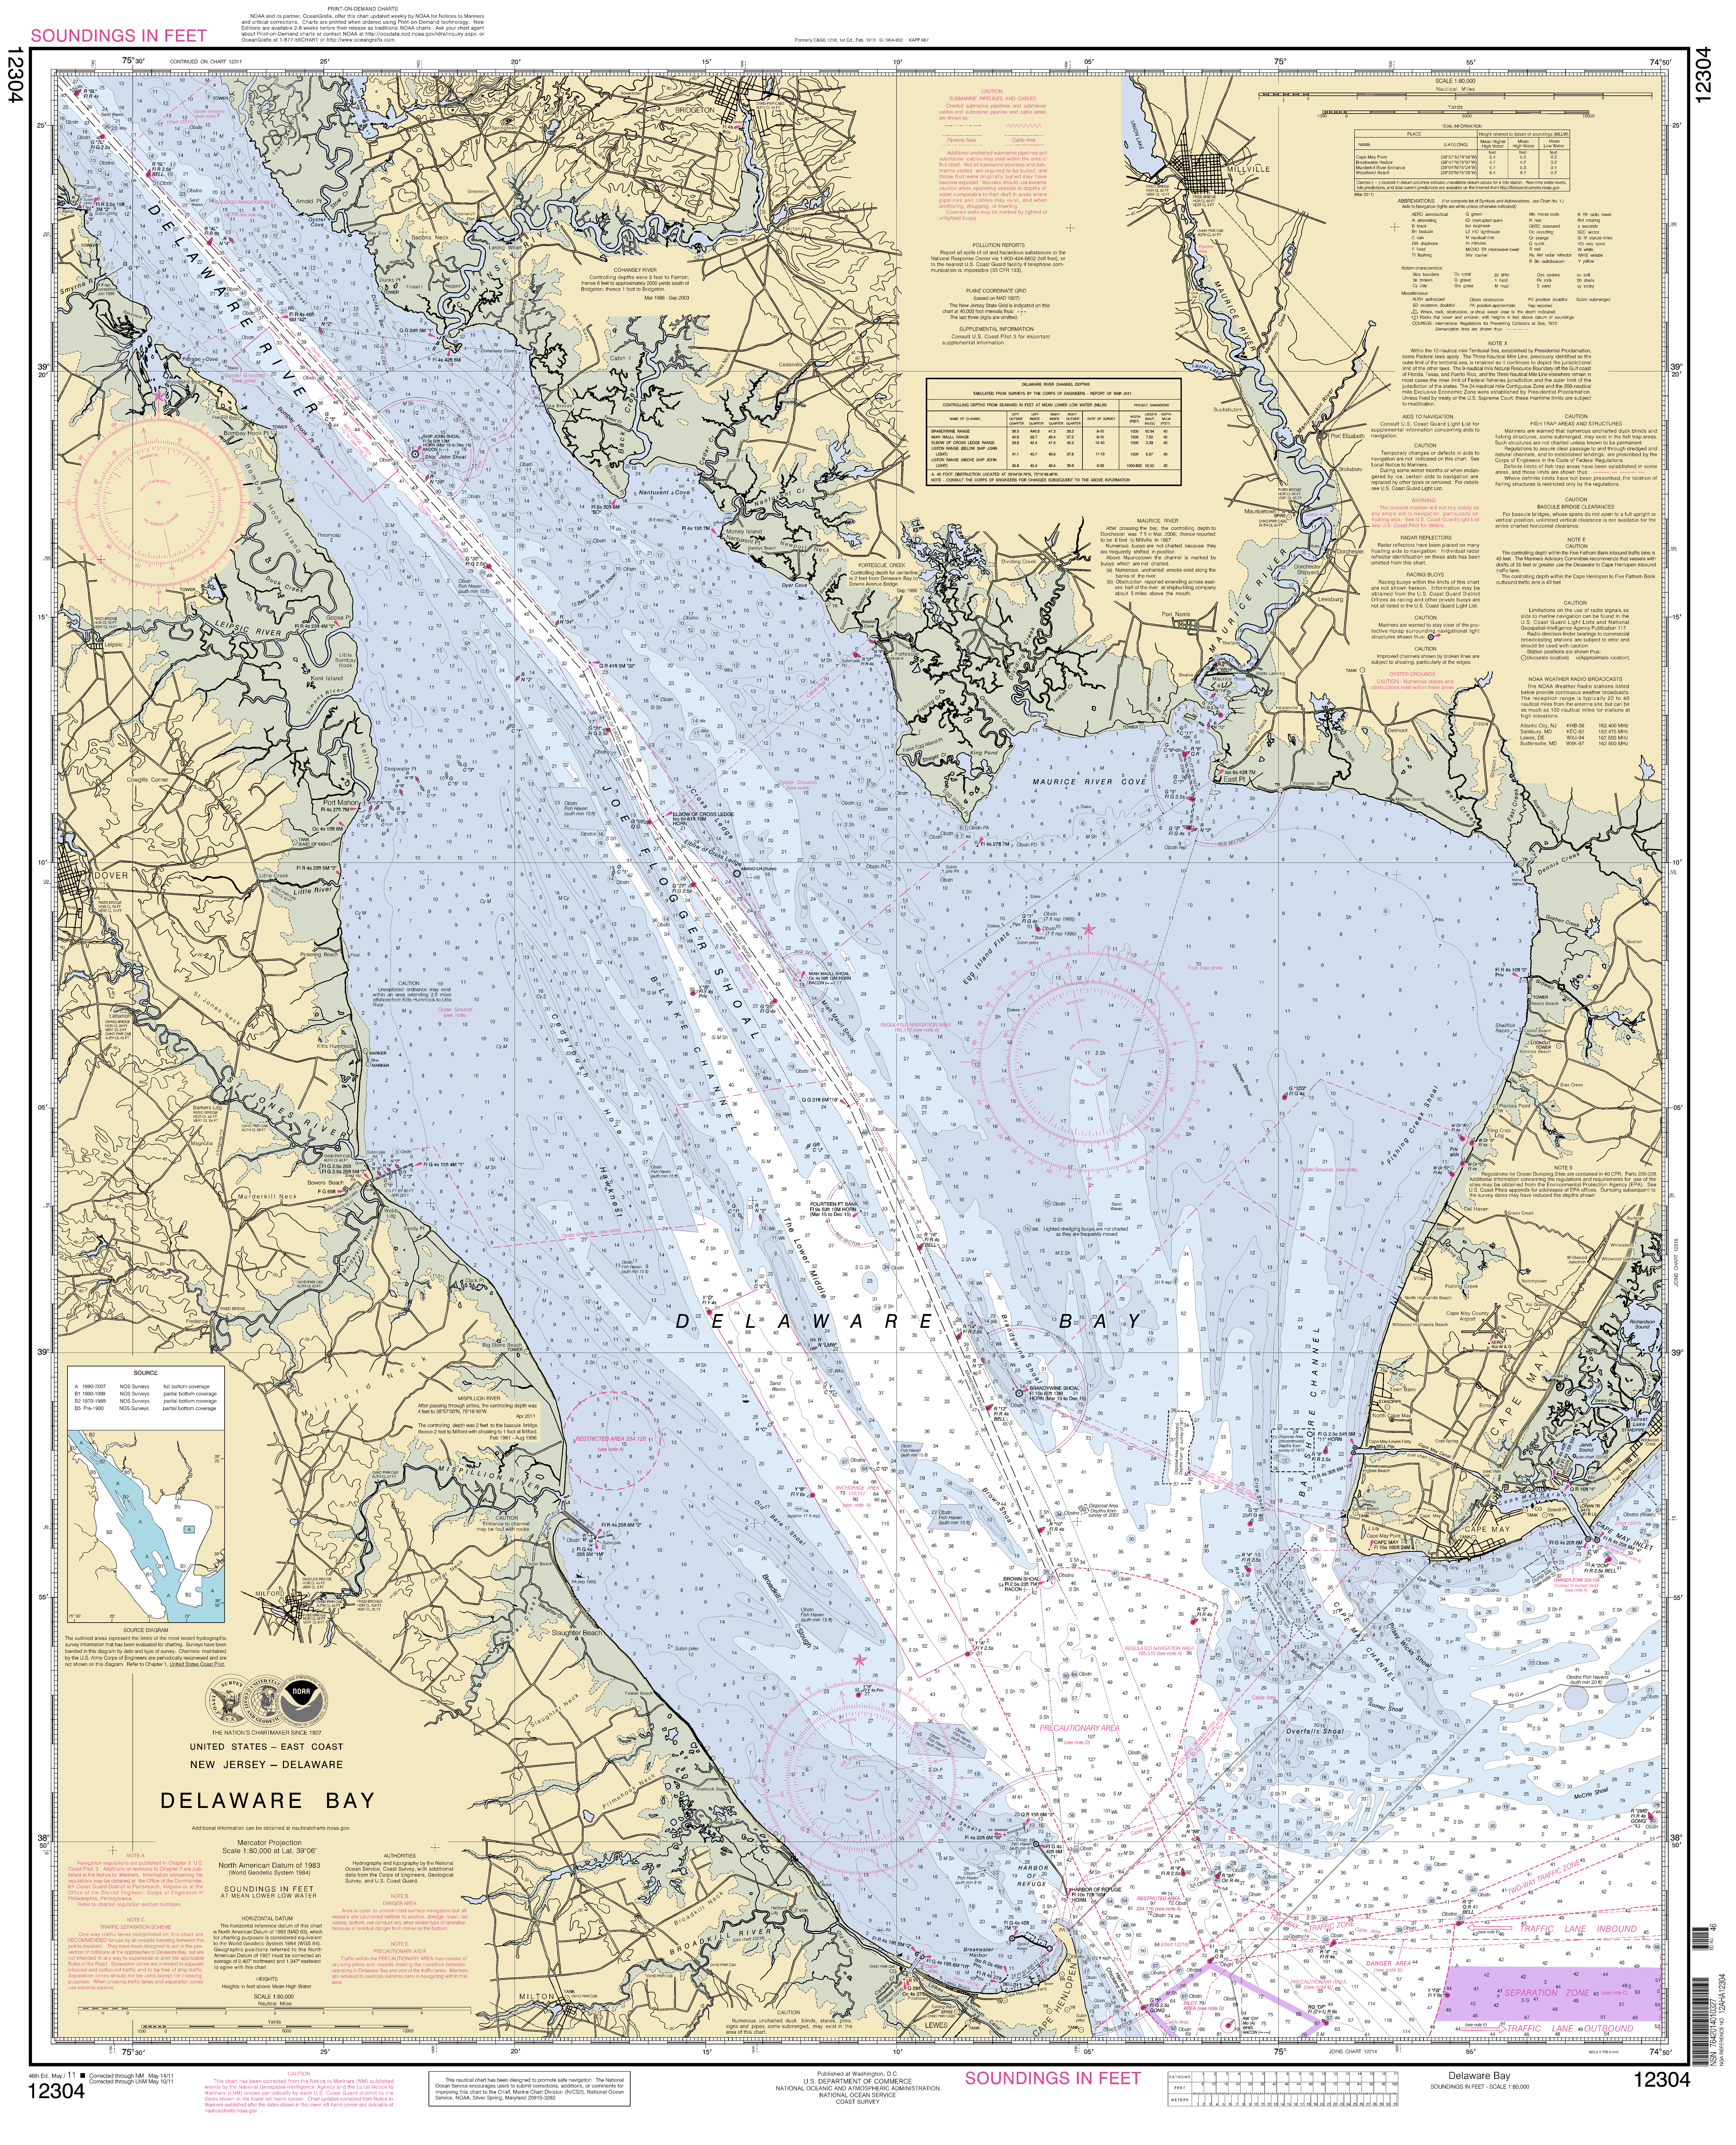 Delaware bay nautical chart charts maps for Fishing in delaware